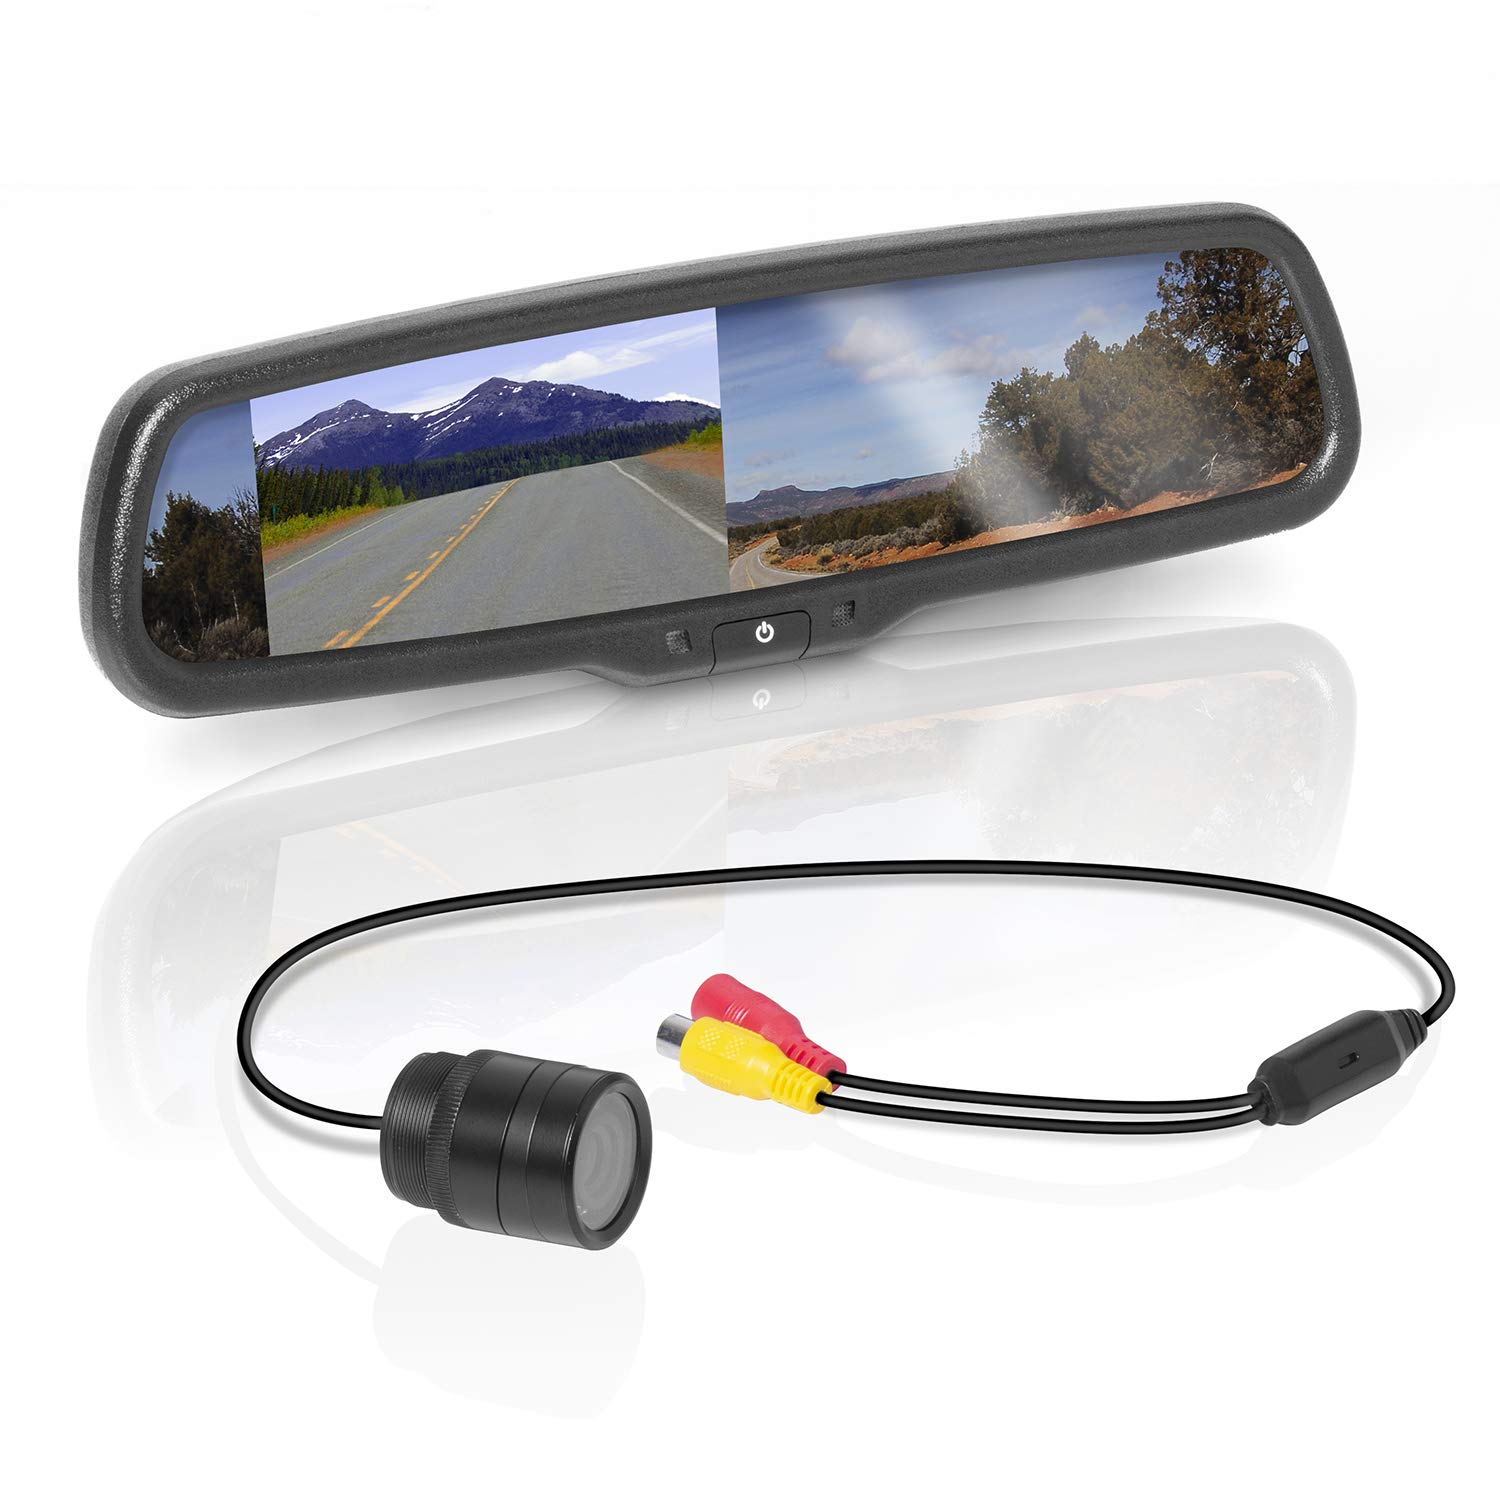 BOSS Audio BV430RVM Rearview Car Mirror with 4.3 Inch Built in High Resolution Digital Monitor - Includes Weatherproof Rearview Backup Camera and Brackets